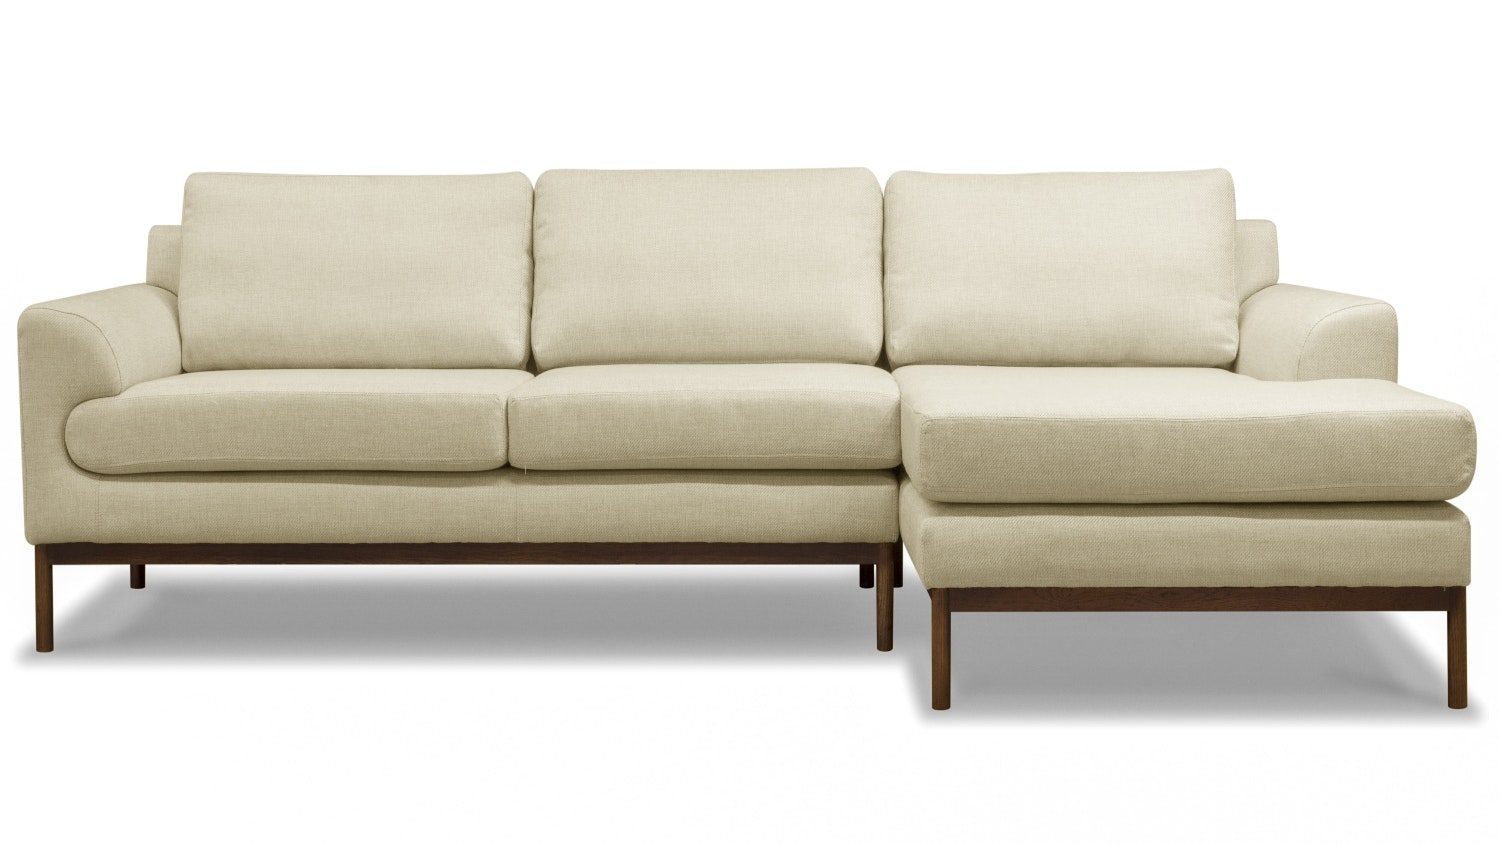 Stockholm 3 Seater Sofa with Chaise Beige